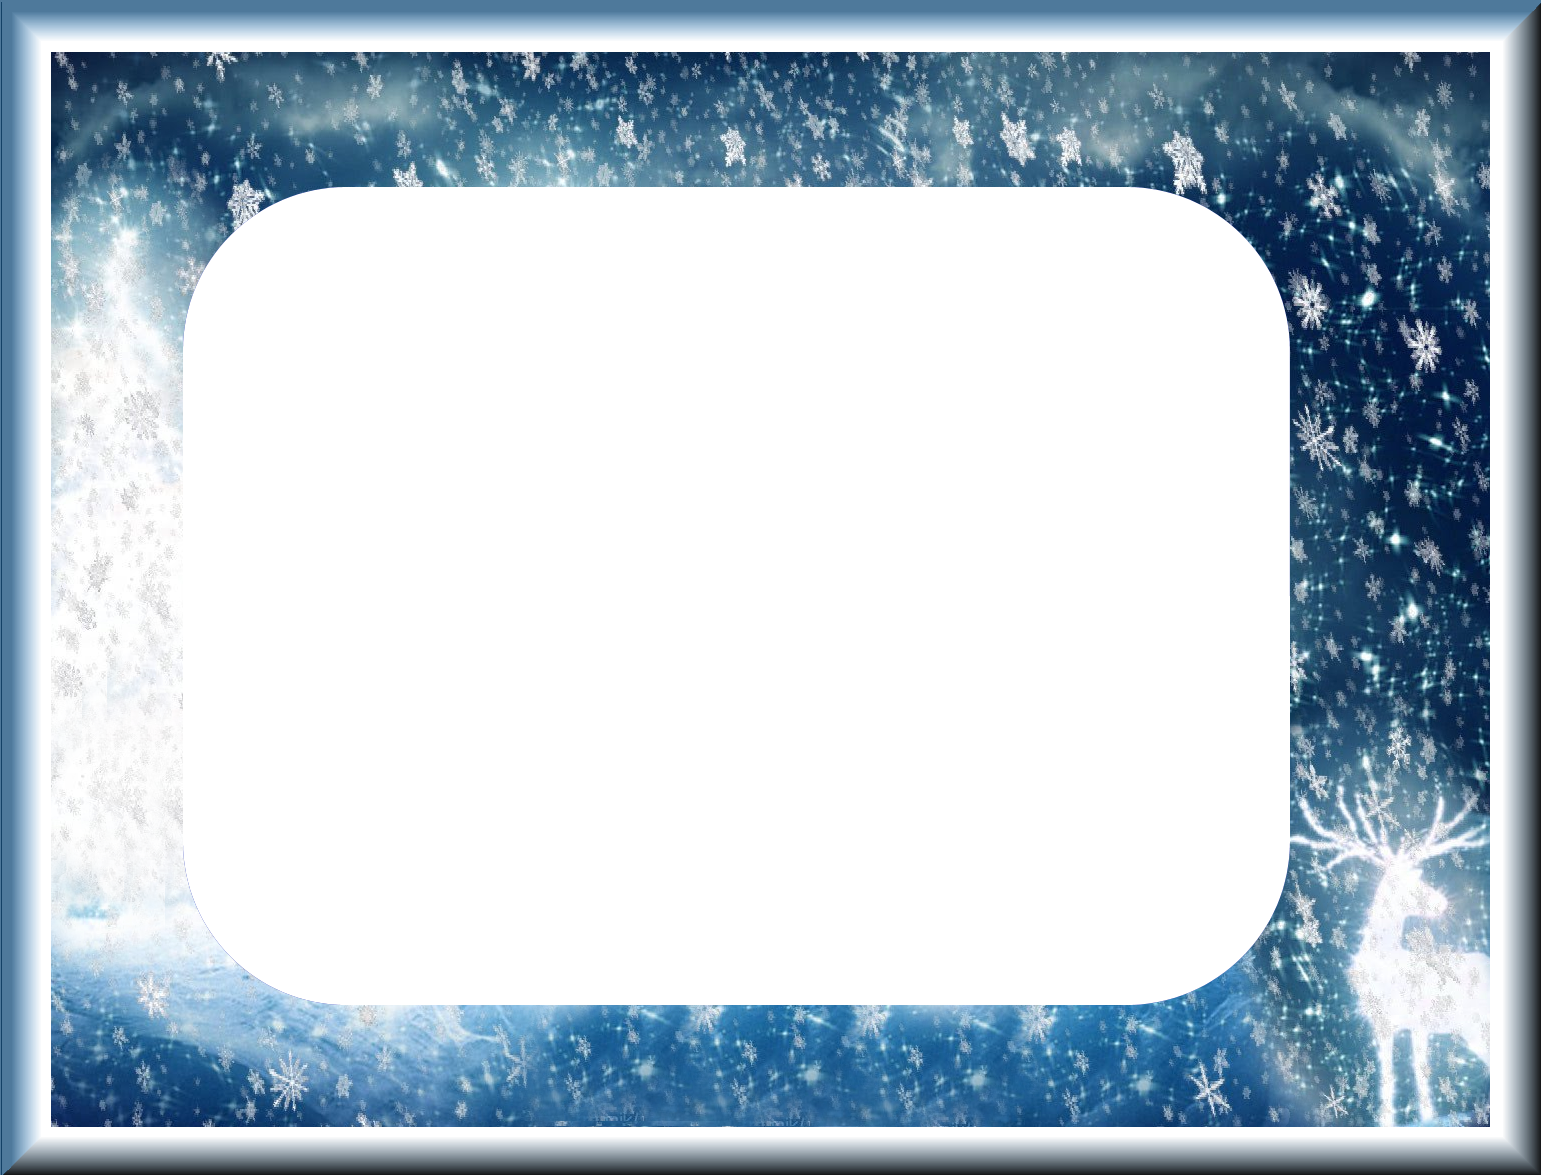 High Resolution Snowing Png Icon image #24388